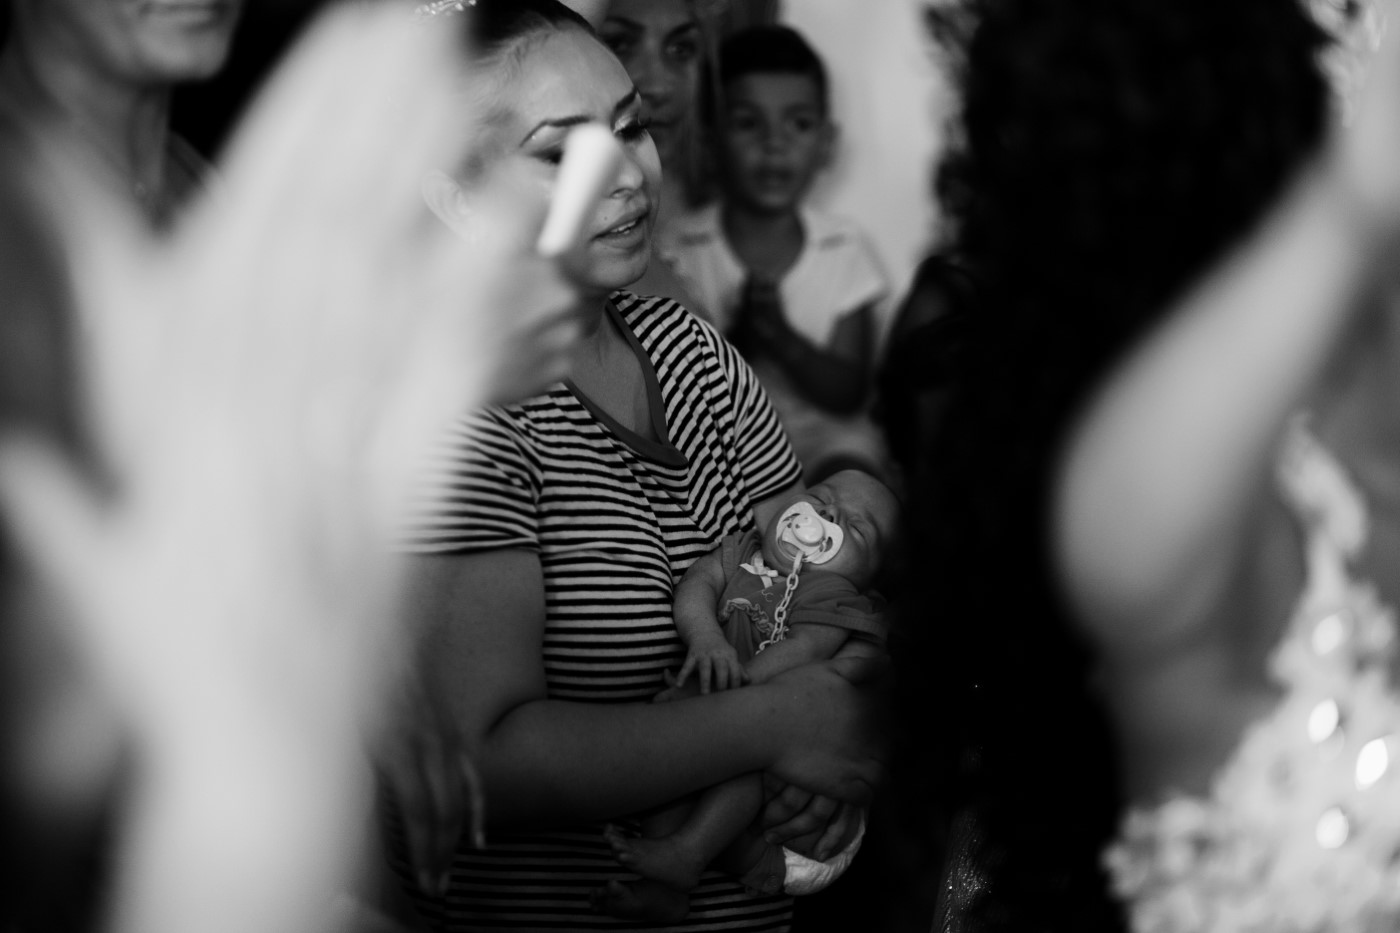 A woman holds her child during the scarf test (yeli).